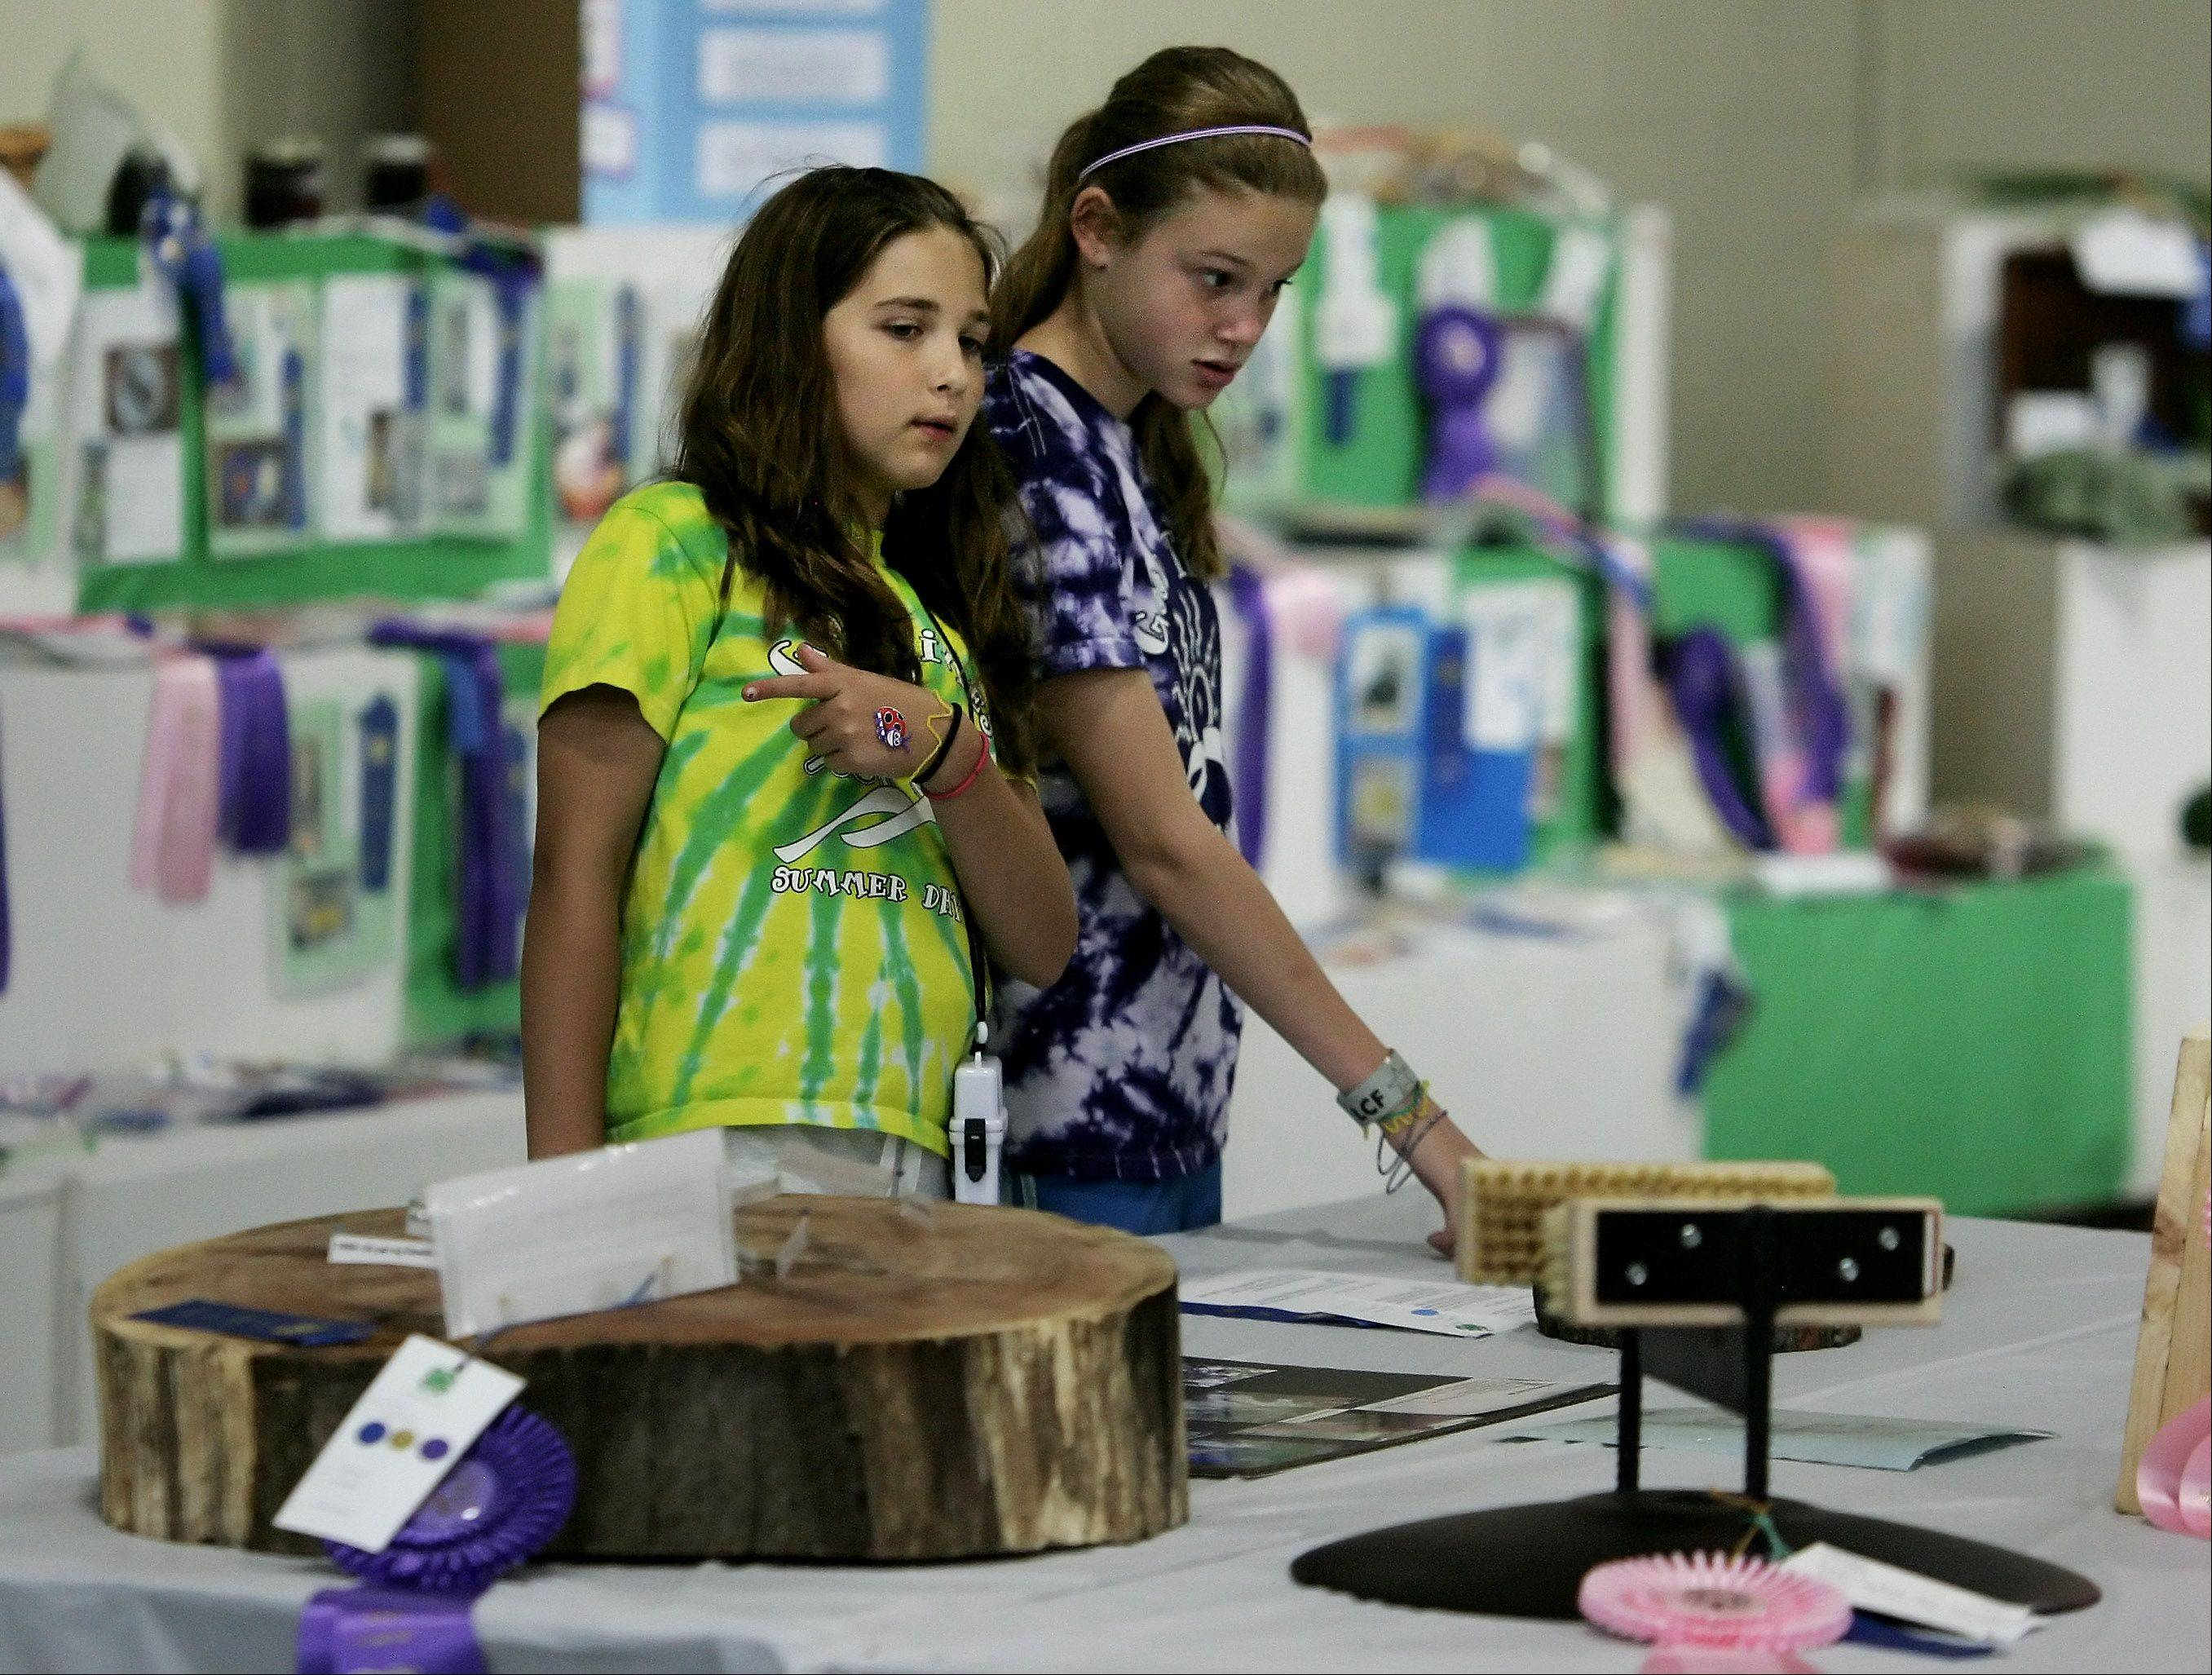 Gabby Garnowski, 11, of Arlington Heights, left, and Paige Gorman, 12, of Glenview look at 4-H club exhibits during the second day of the 83rd Annual Lake County Fair Wednesday at the fairgrounds in Grayslake.